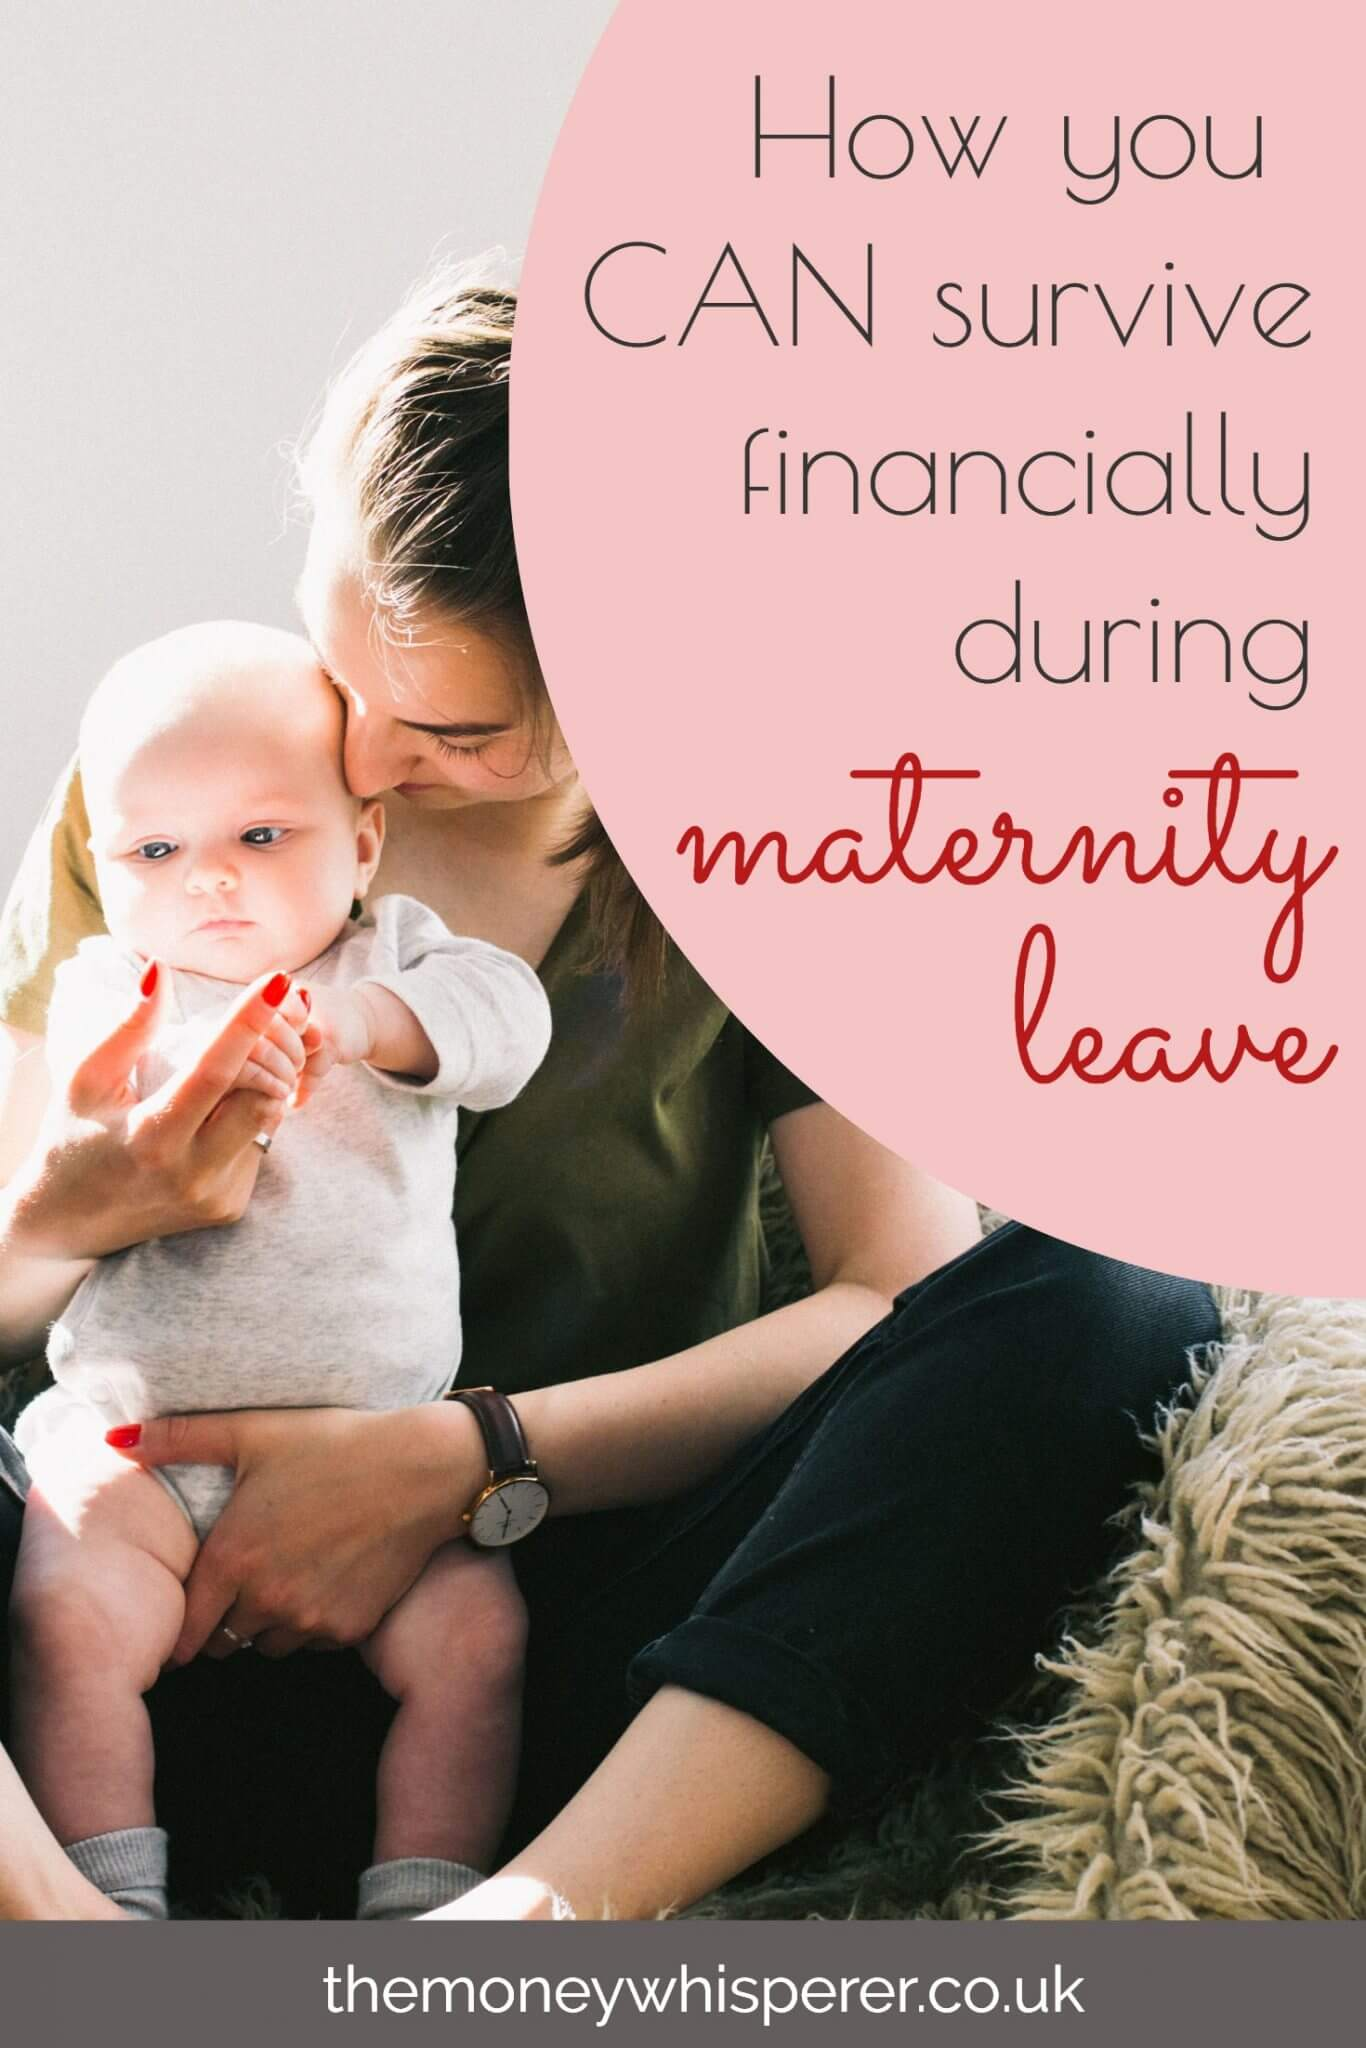 How you can survive financially during maternity leave - a mixture of practical tips and guidance on your rights #maternity #finances #money